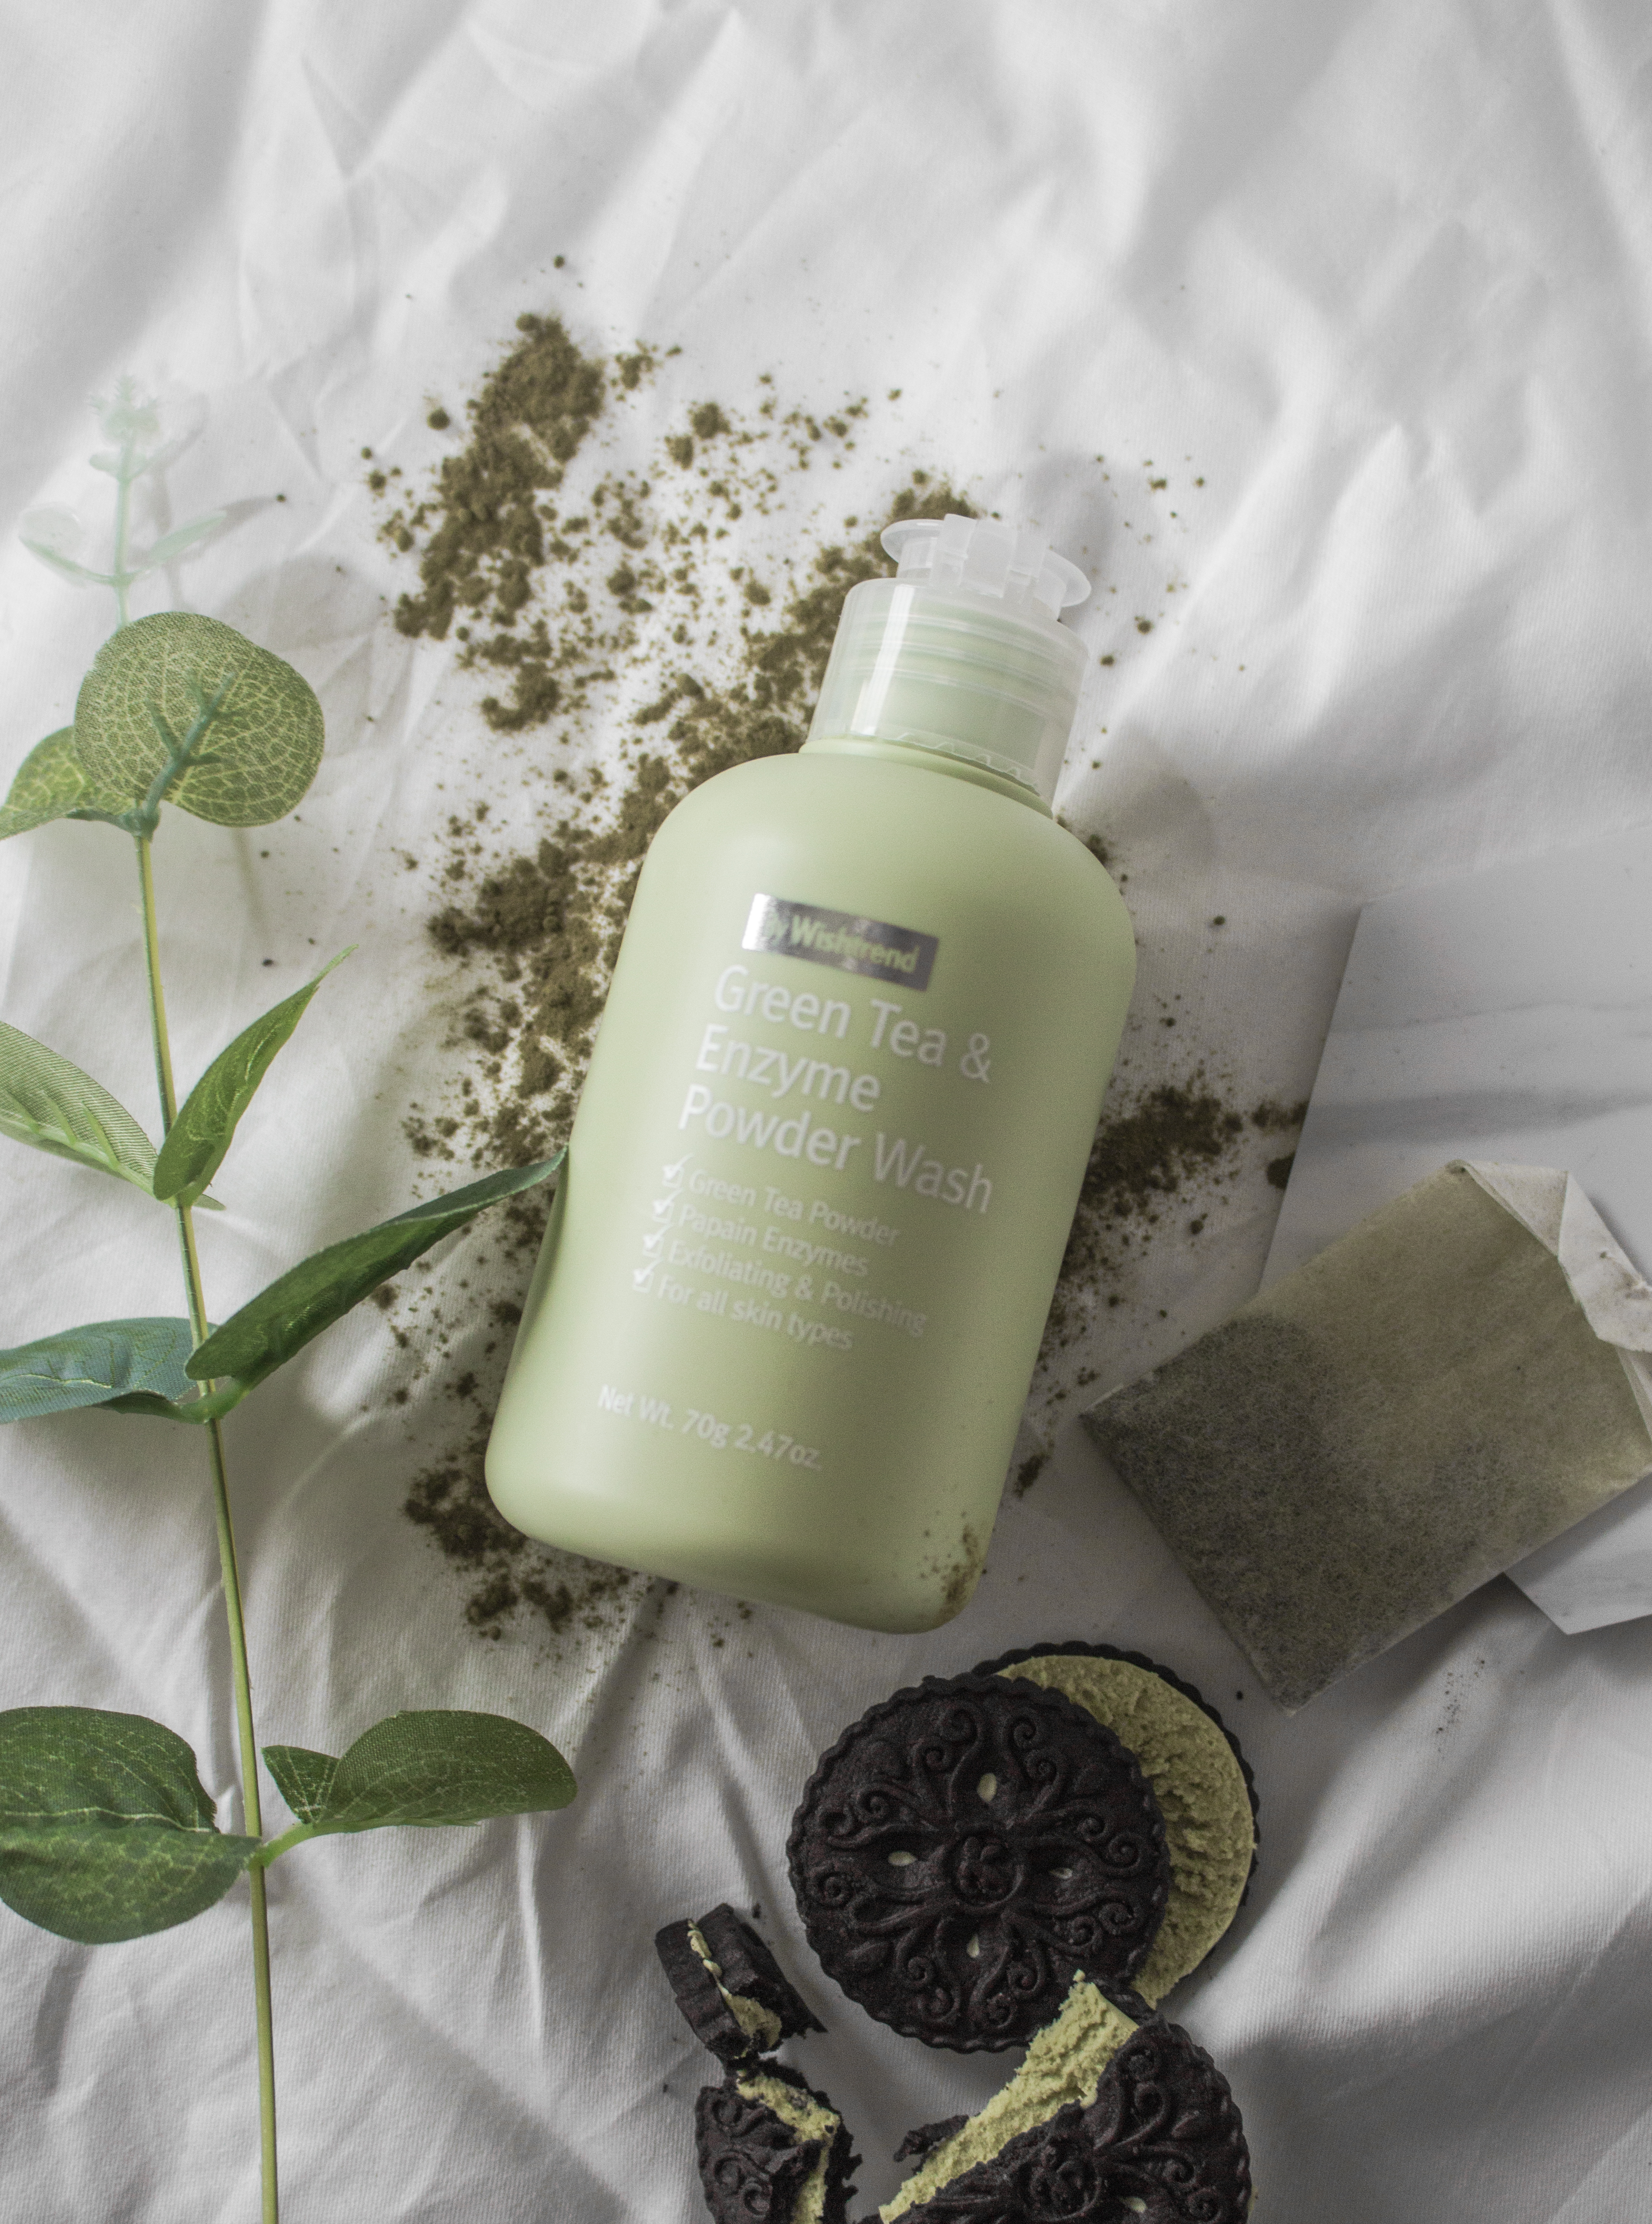 By Wishtrend Green Tea and Enzyme Powder Wash